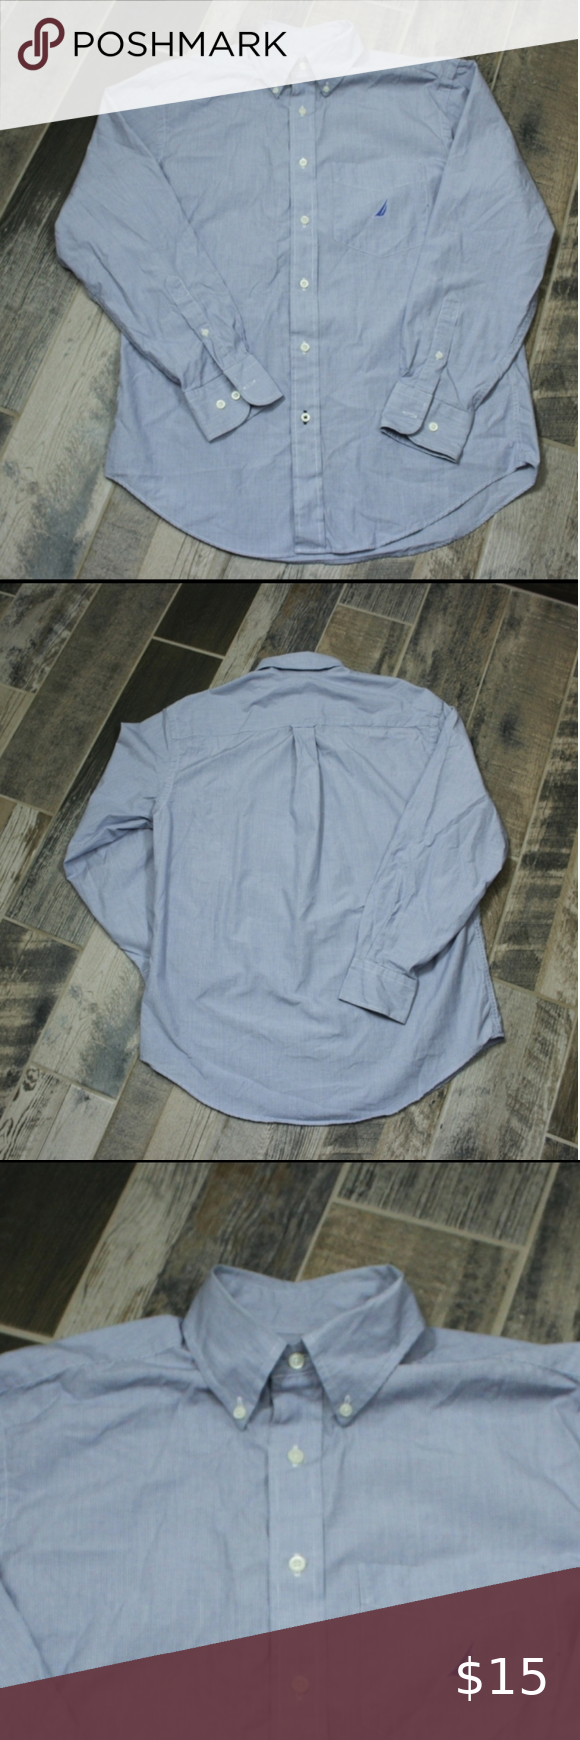 Nautica Men Button Down Long Sleeve Shirt Nautica Men Button Down Shirt Size M Long Sleeve  Size M Fabric: 100% cotton Condition: pre-owned in excellent condition  Measurements: Back length: approx. 31 inches (laid flat measurement from the neck to the bottom of the back) Pit to pit: approx. 23 inches Sleeve length: approx. 20 1/4 inches (measured from the very end of the arm on the underside up to the seam meeting at the underarm)  R0706 Nautica Shirts